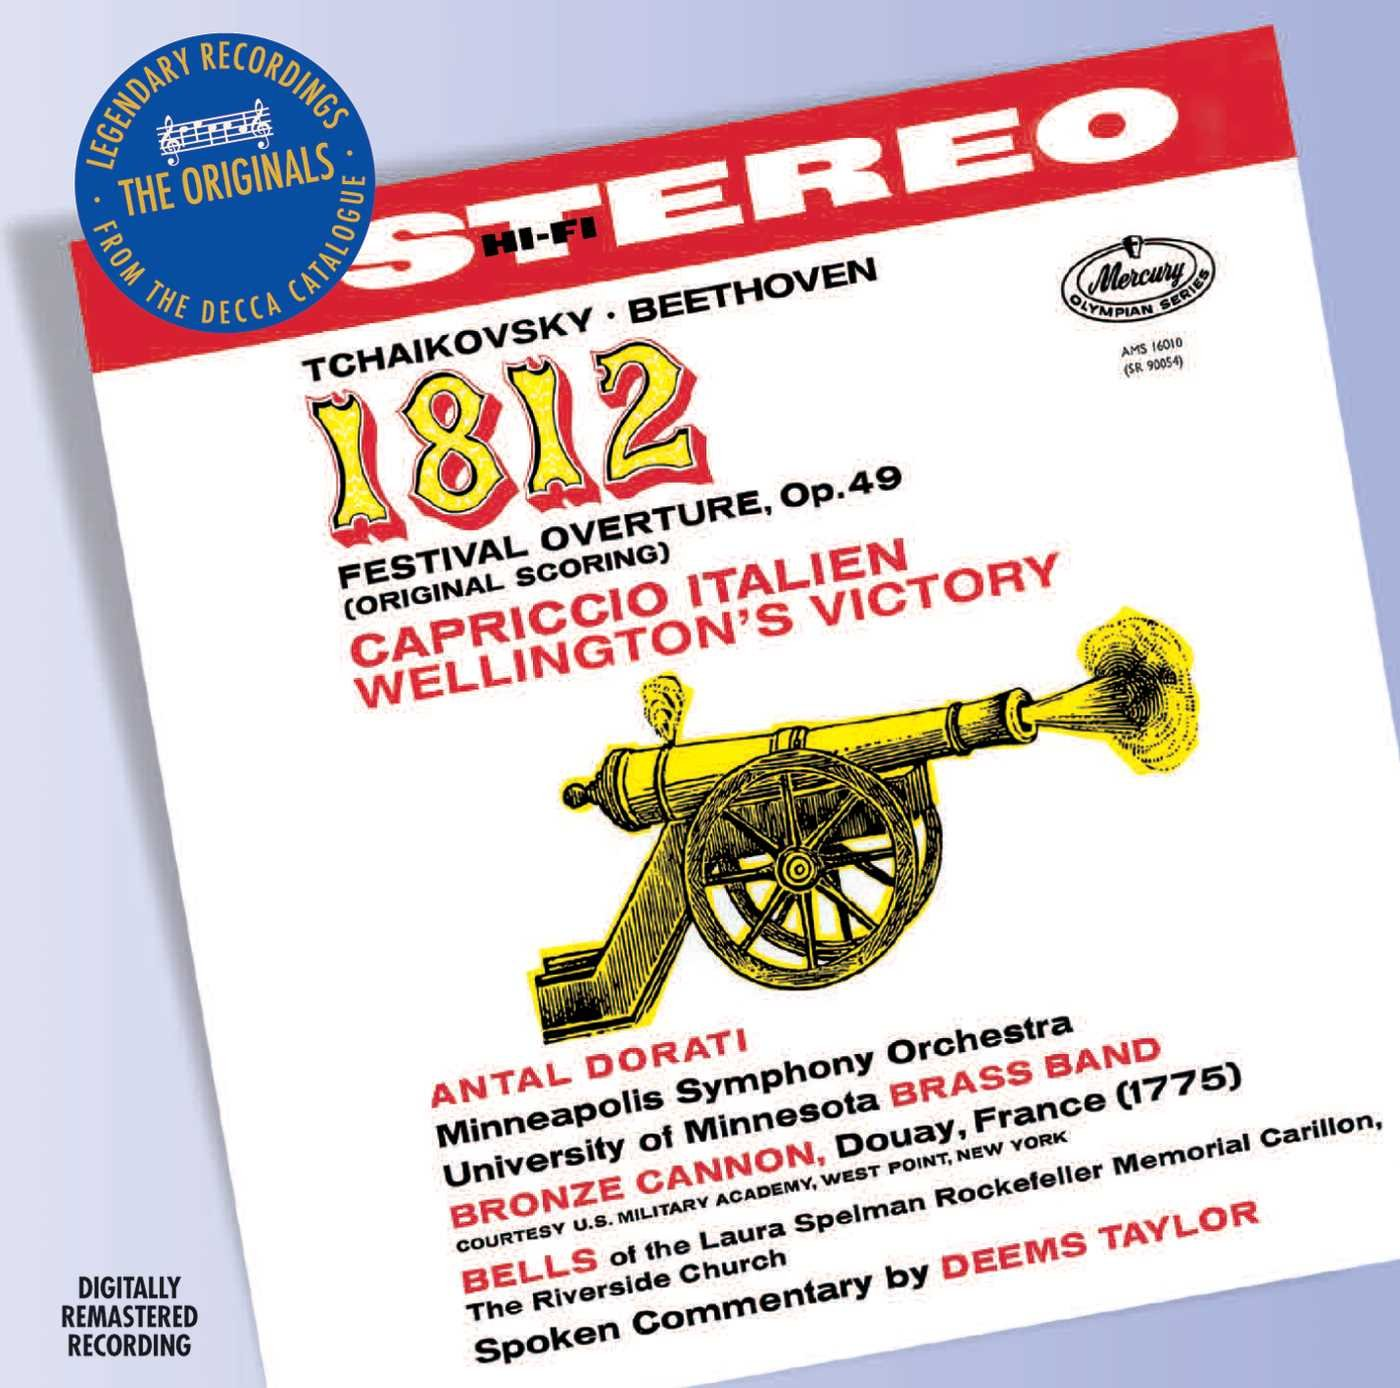 How To Top 1812 Overture How About >> Peter Ilyich Tchaikovsky 1812 Overture Capriccio Italien